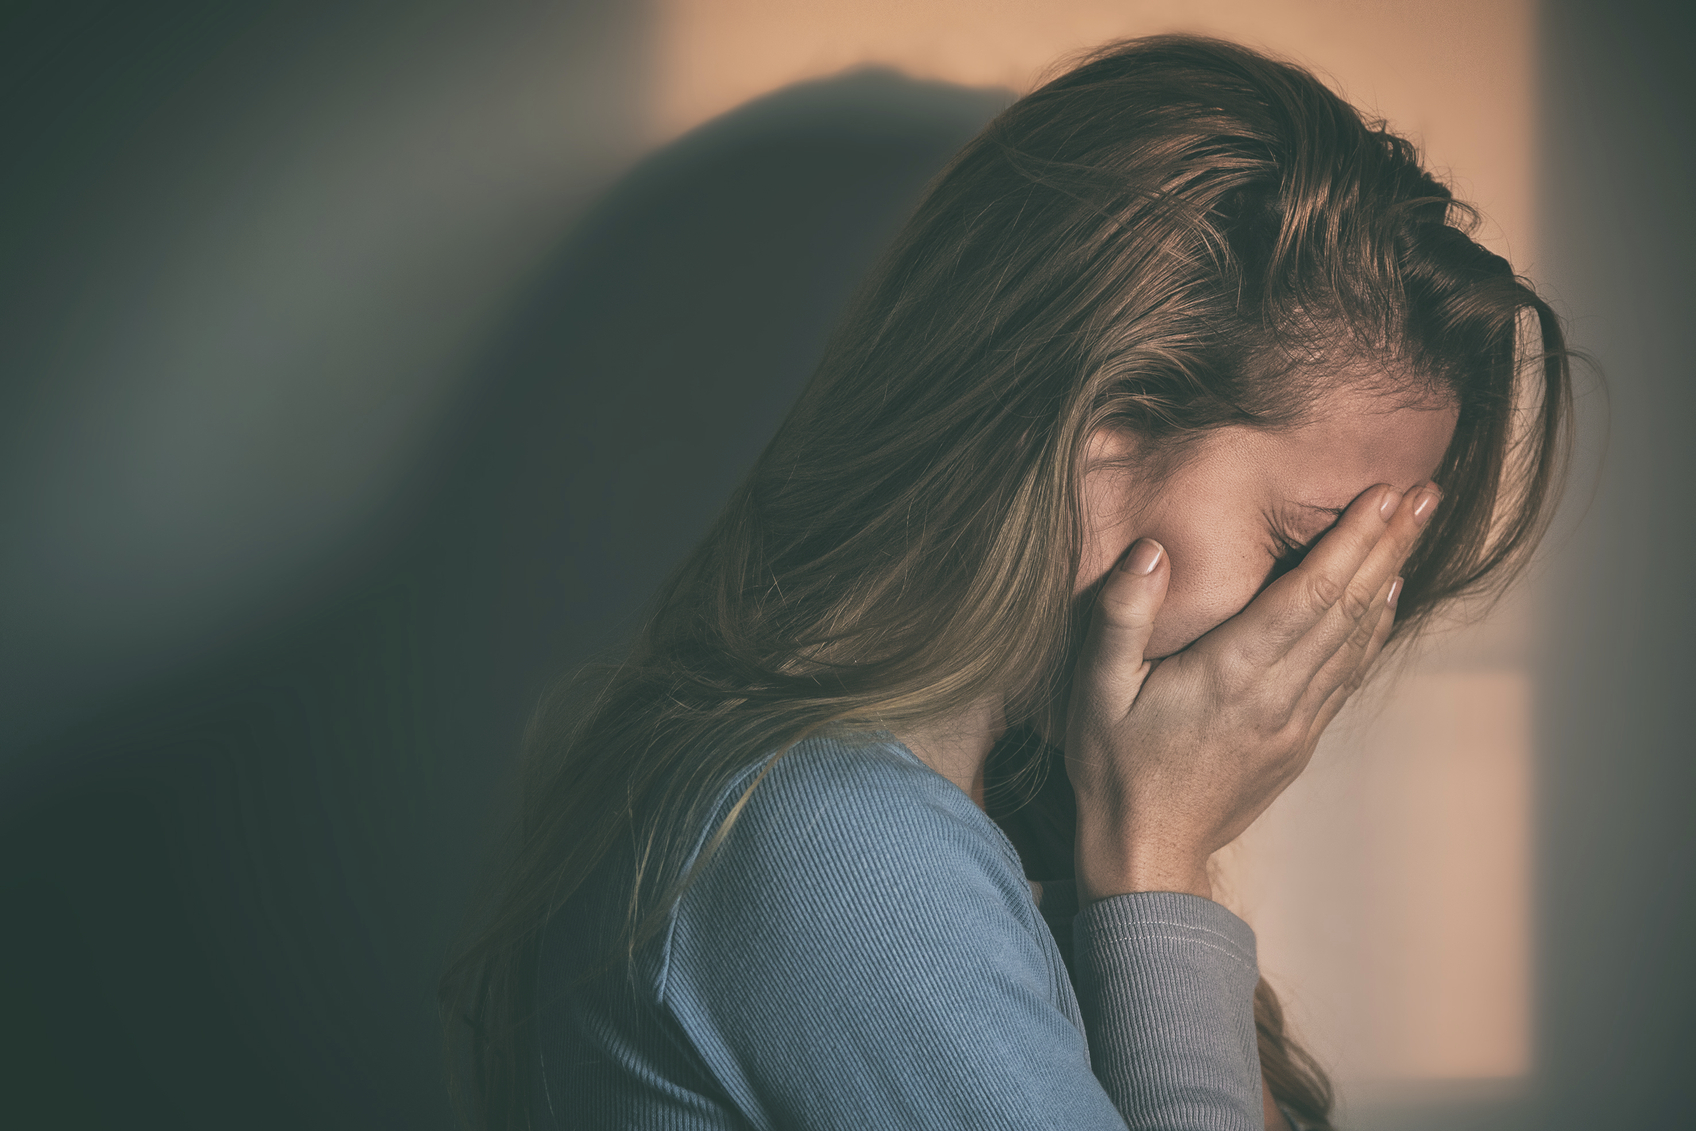 Managing emotions: stop shame, stress and fear from running your life